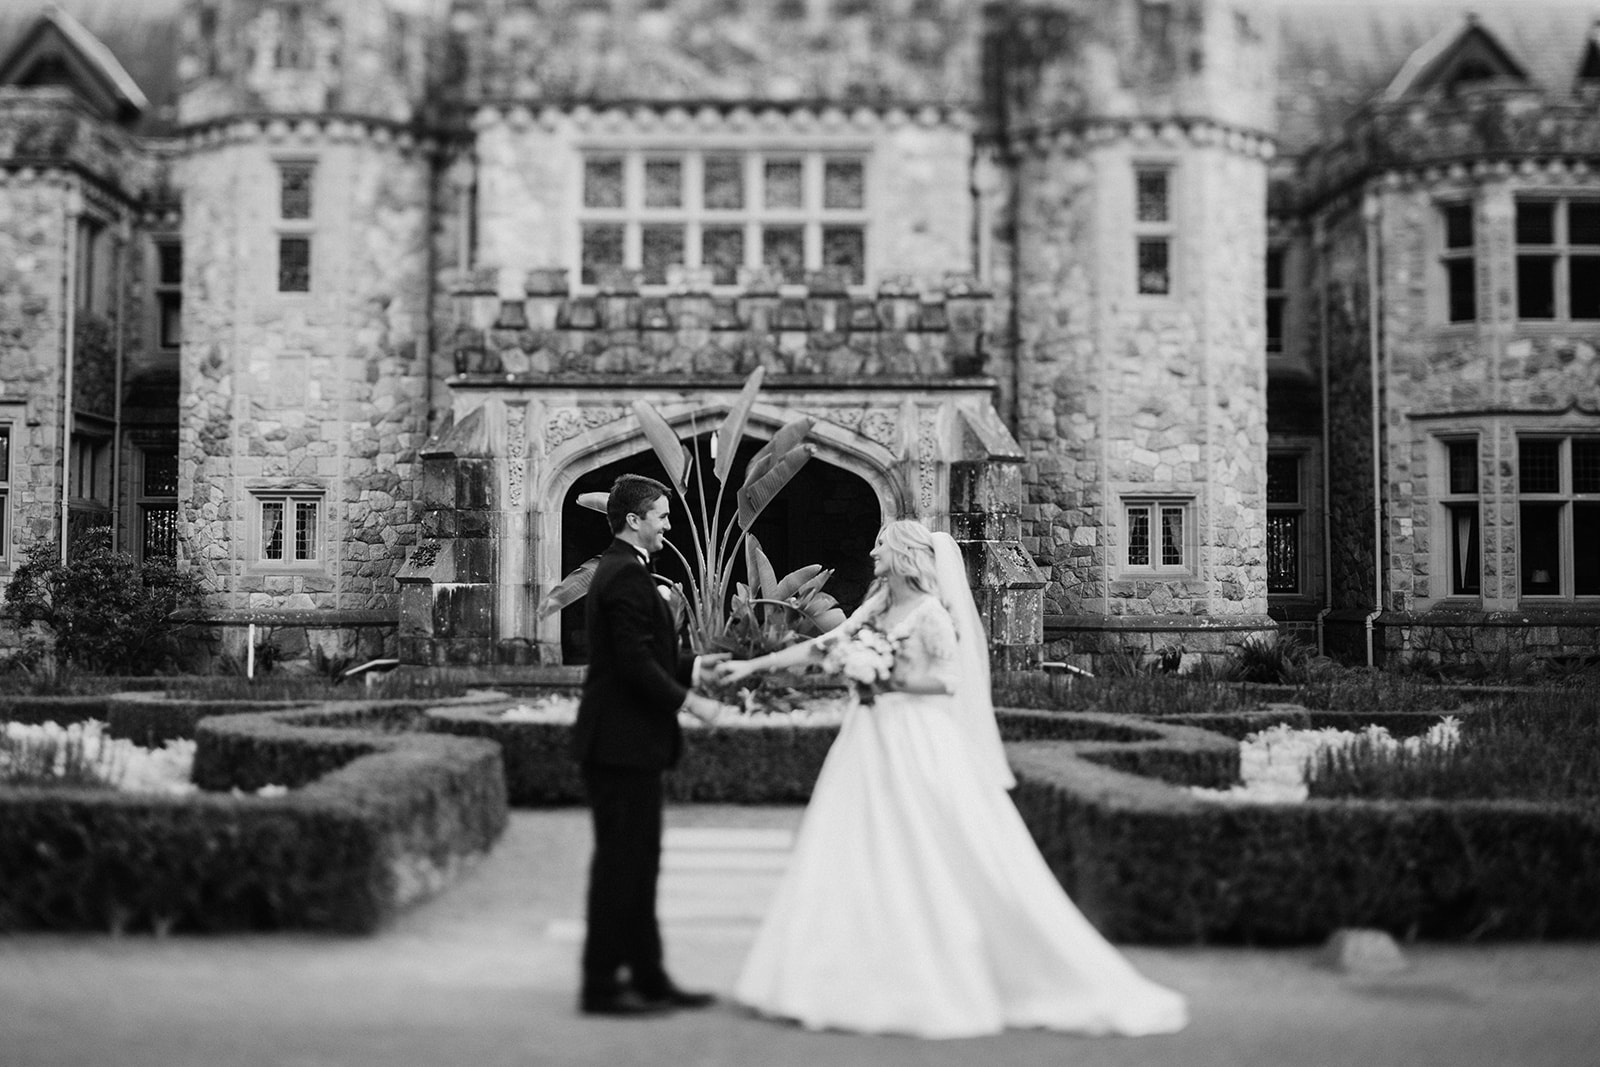 Hatley Castle Wedding photographer bride and groom in front of castle